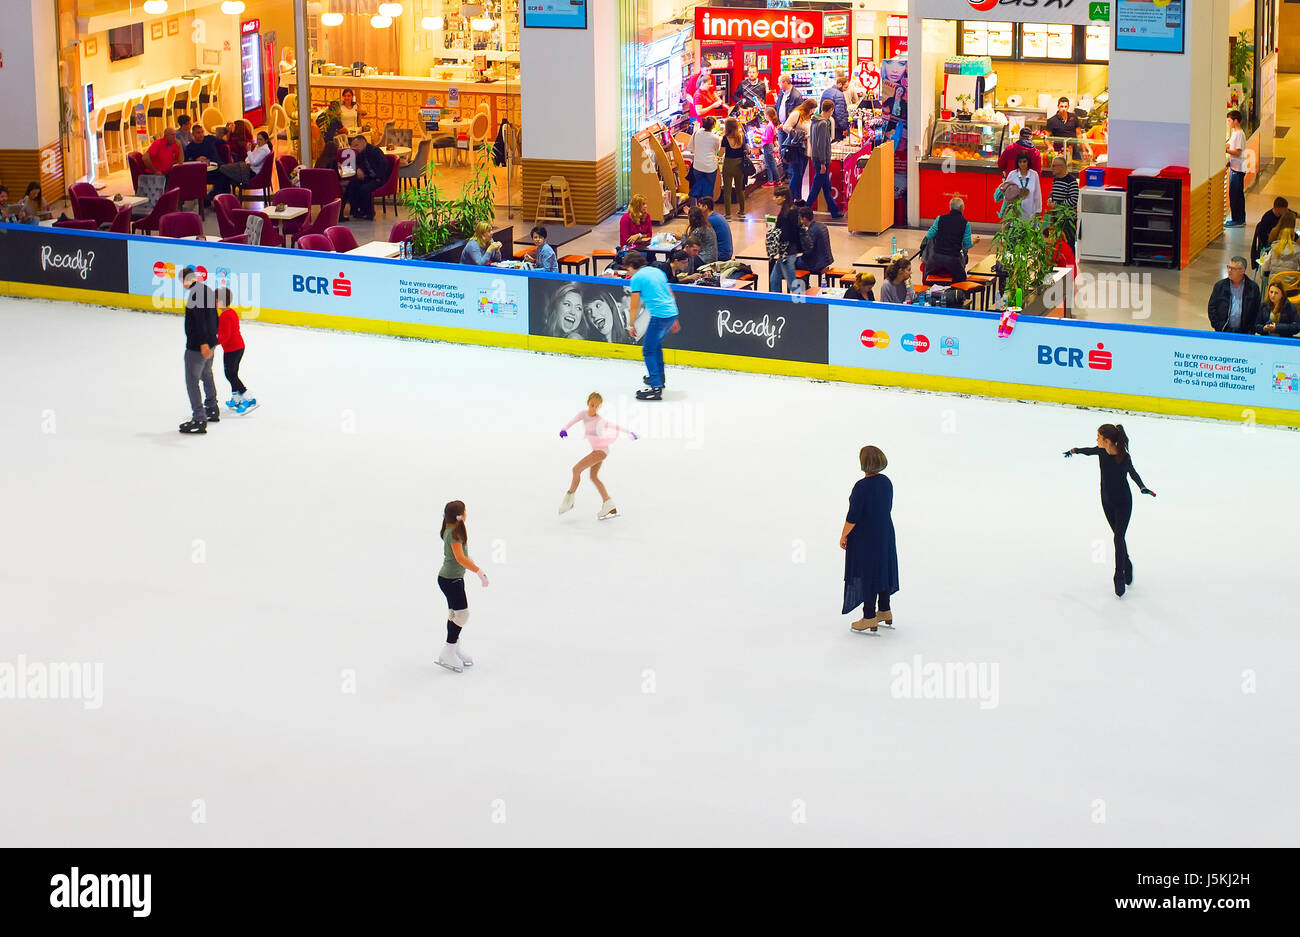 Roller skating rink jakarta - Bucharest Romania Oct 14 2016 People At Ice Rink At Controceni Shopping